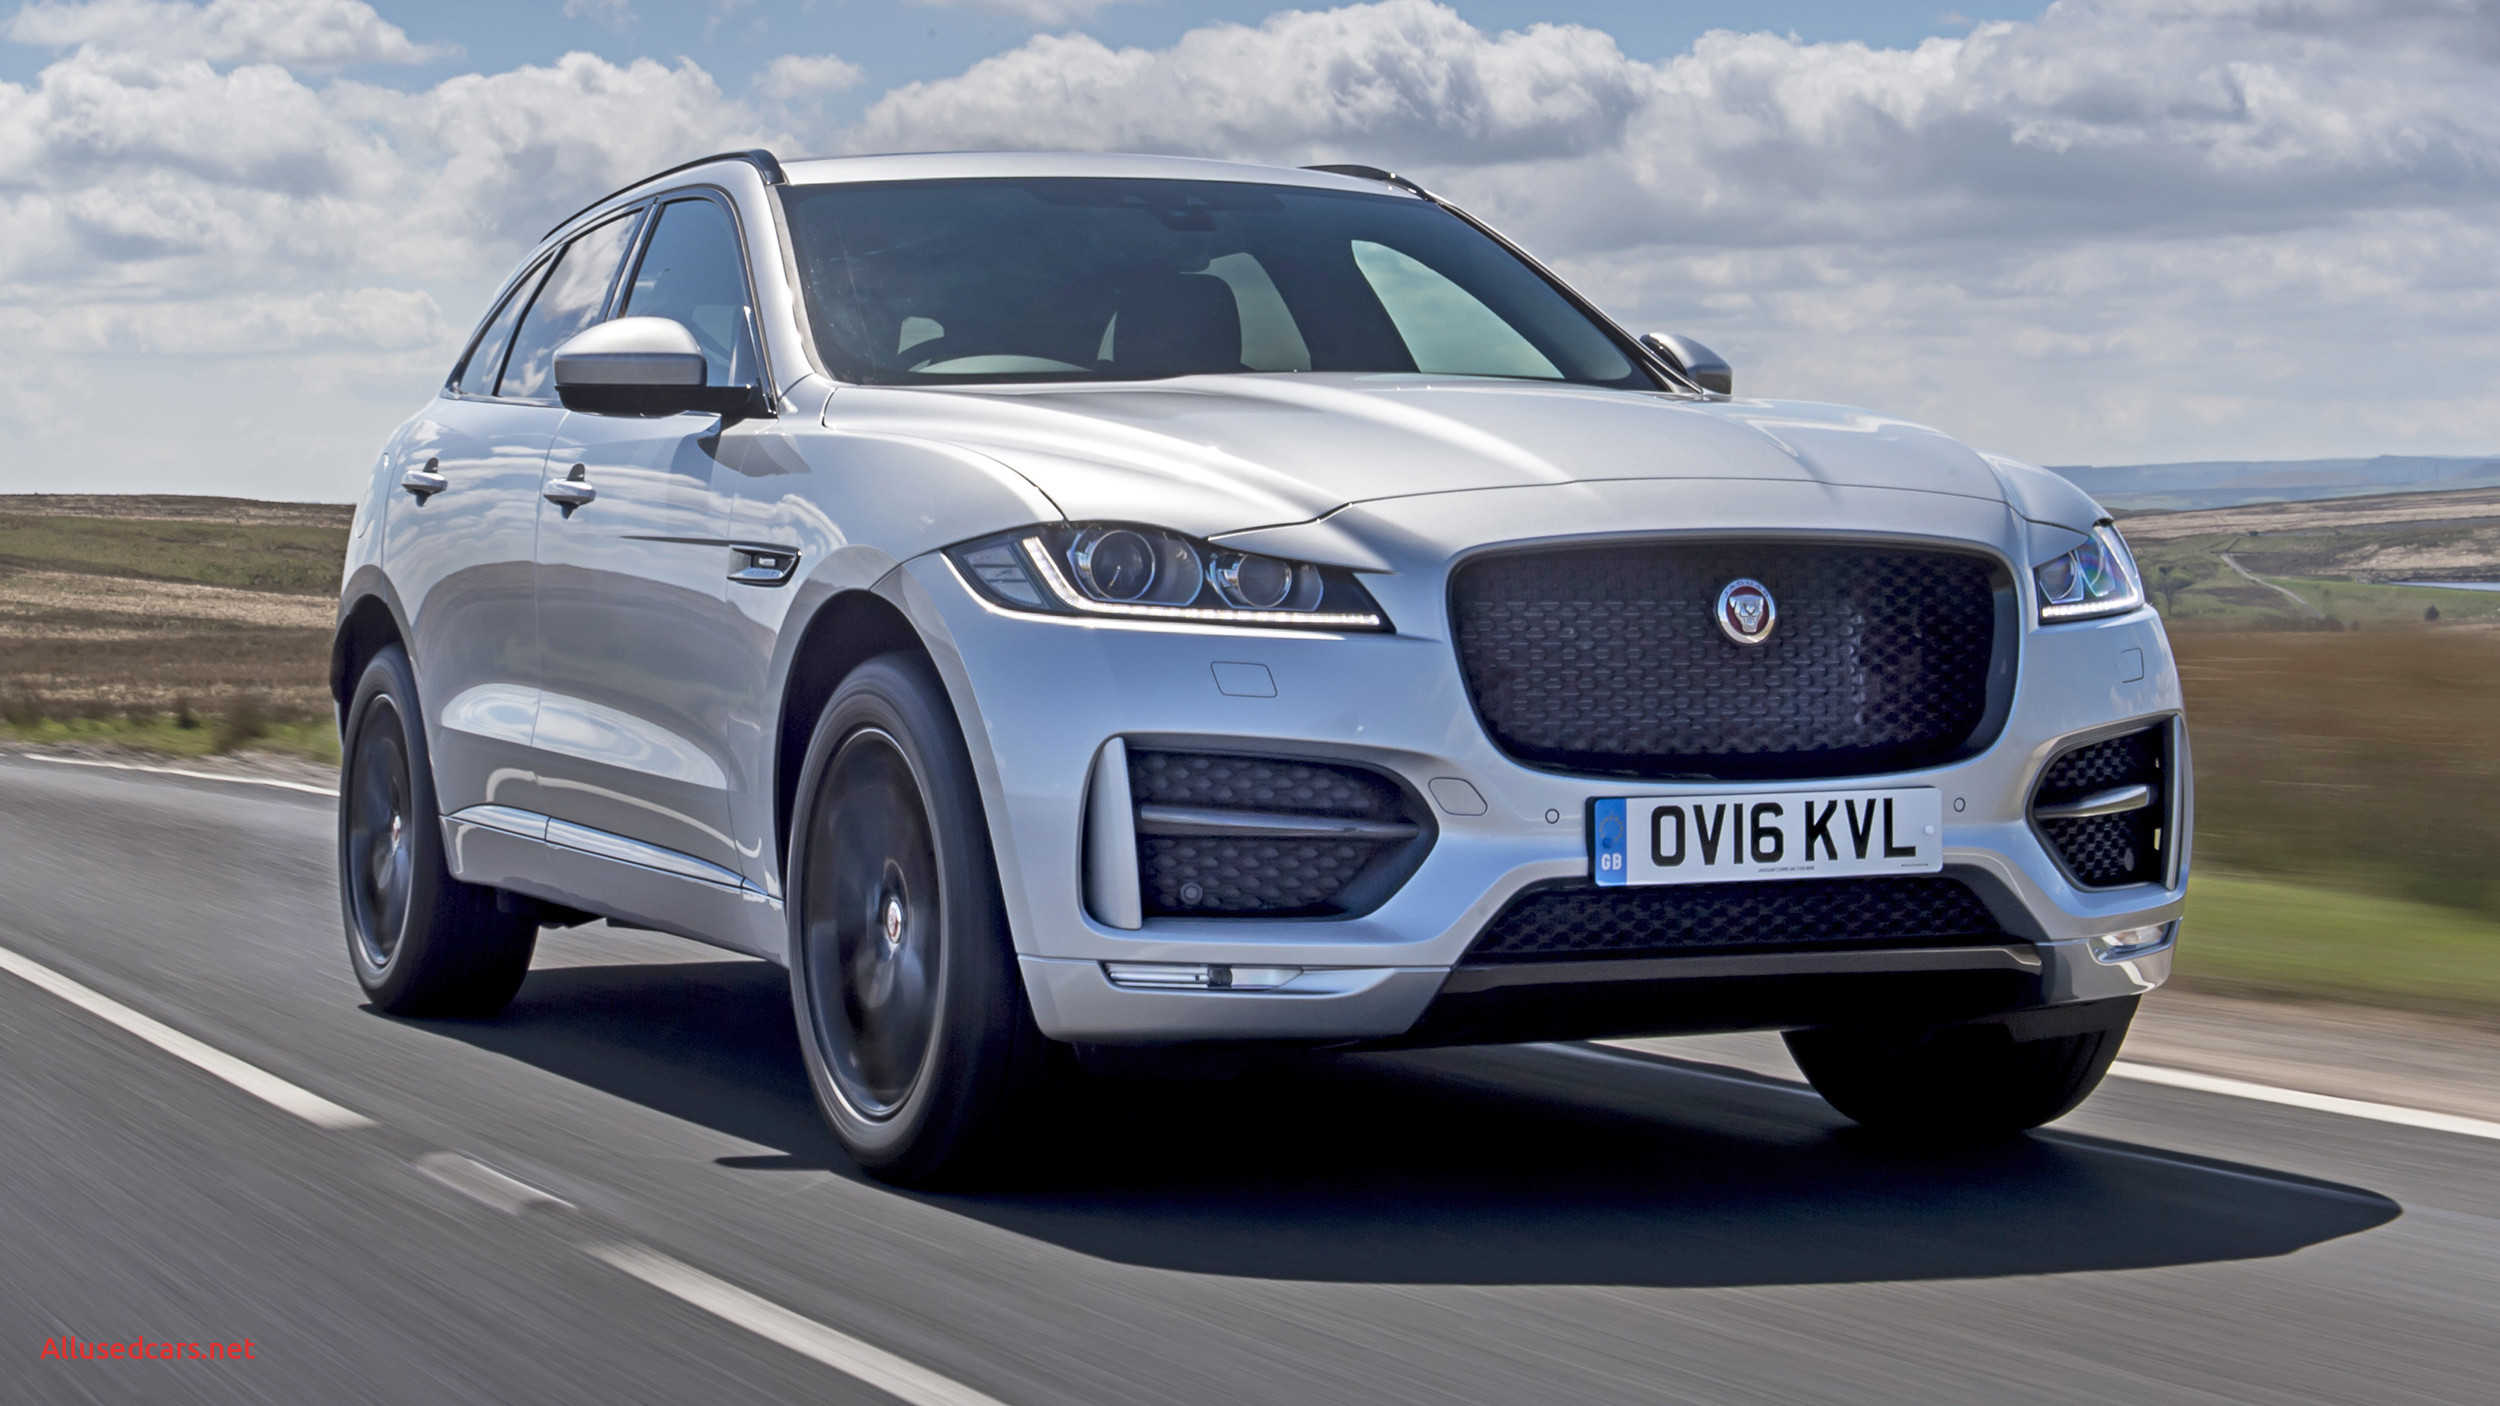 nicest tesla model review the jaguar f pace 2 0d of nicest tesla model